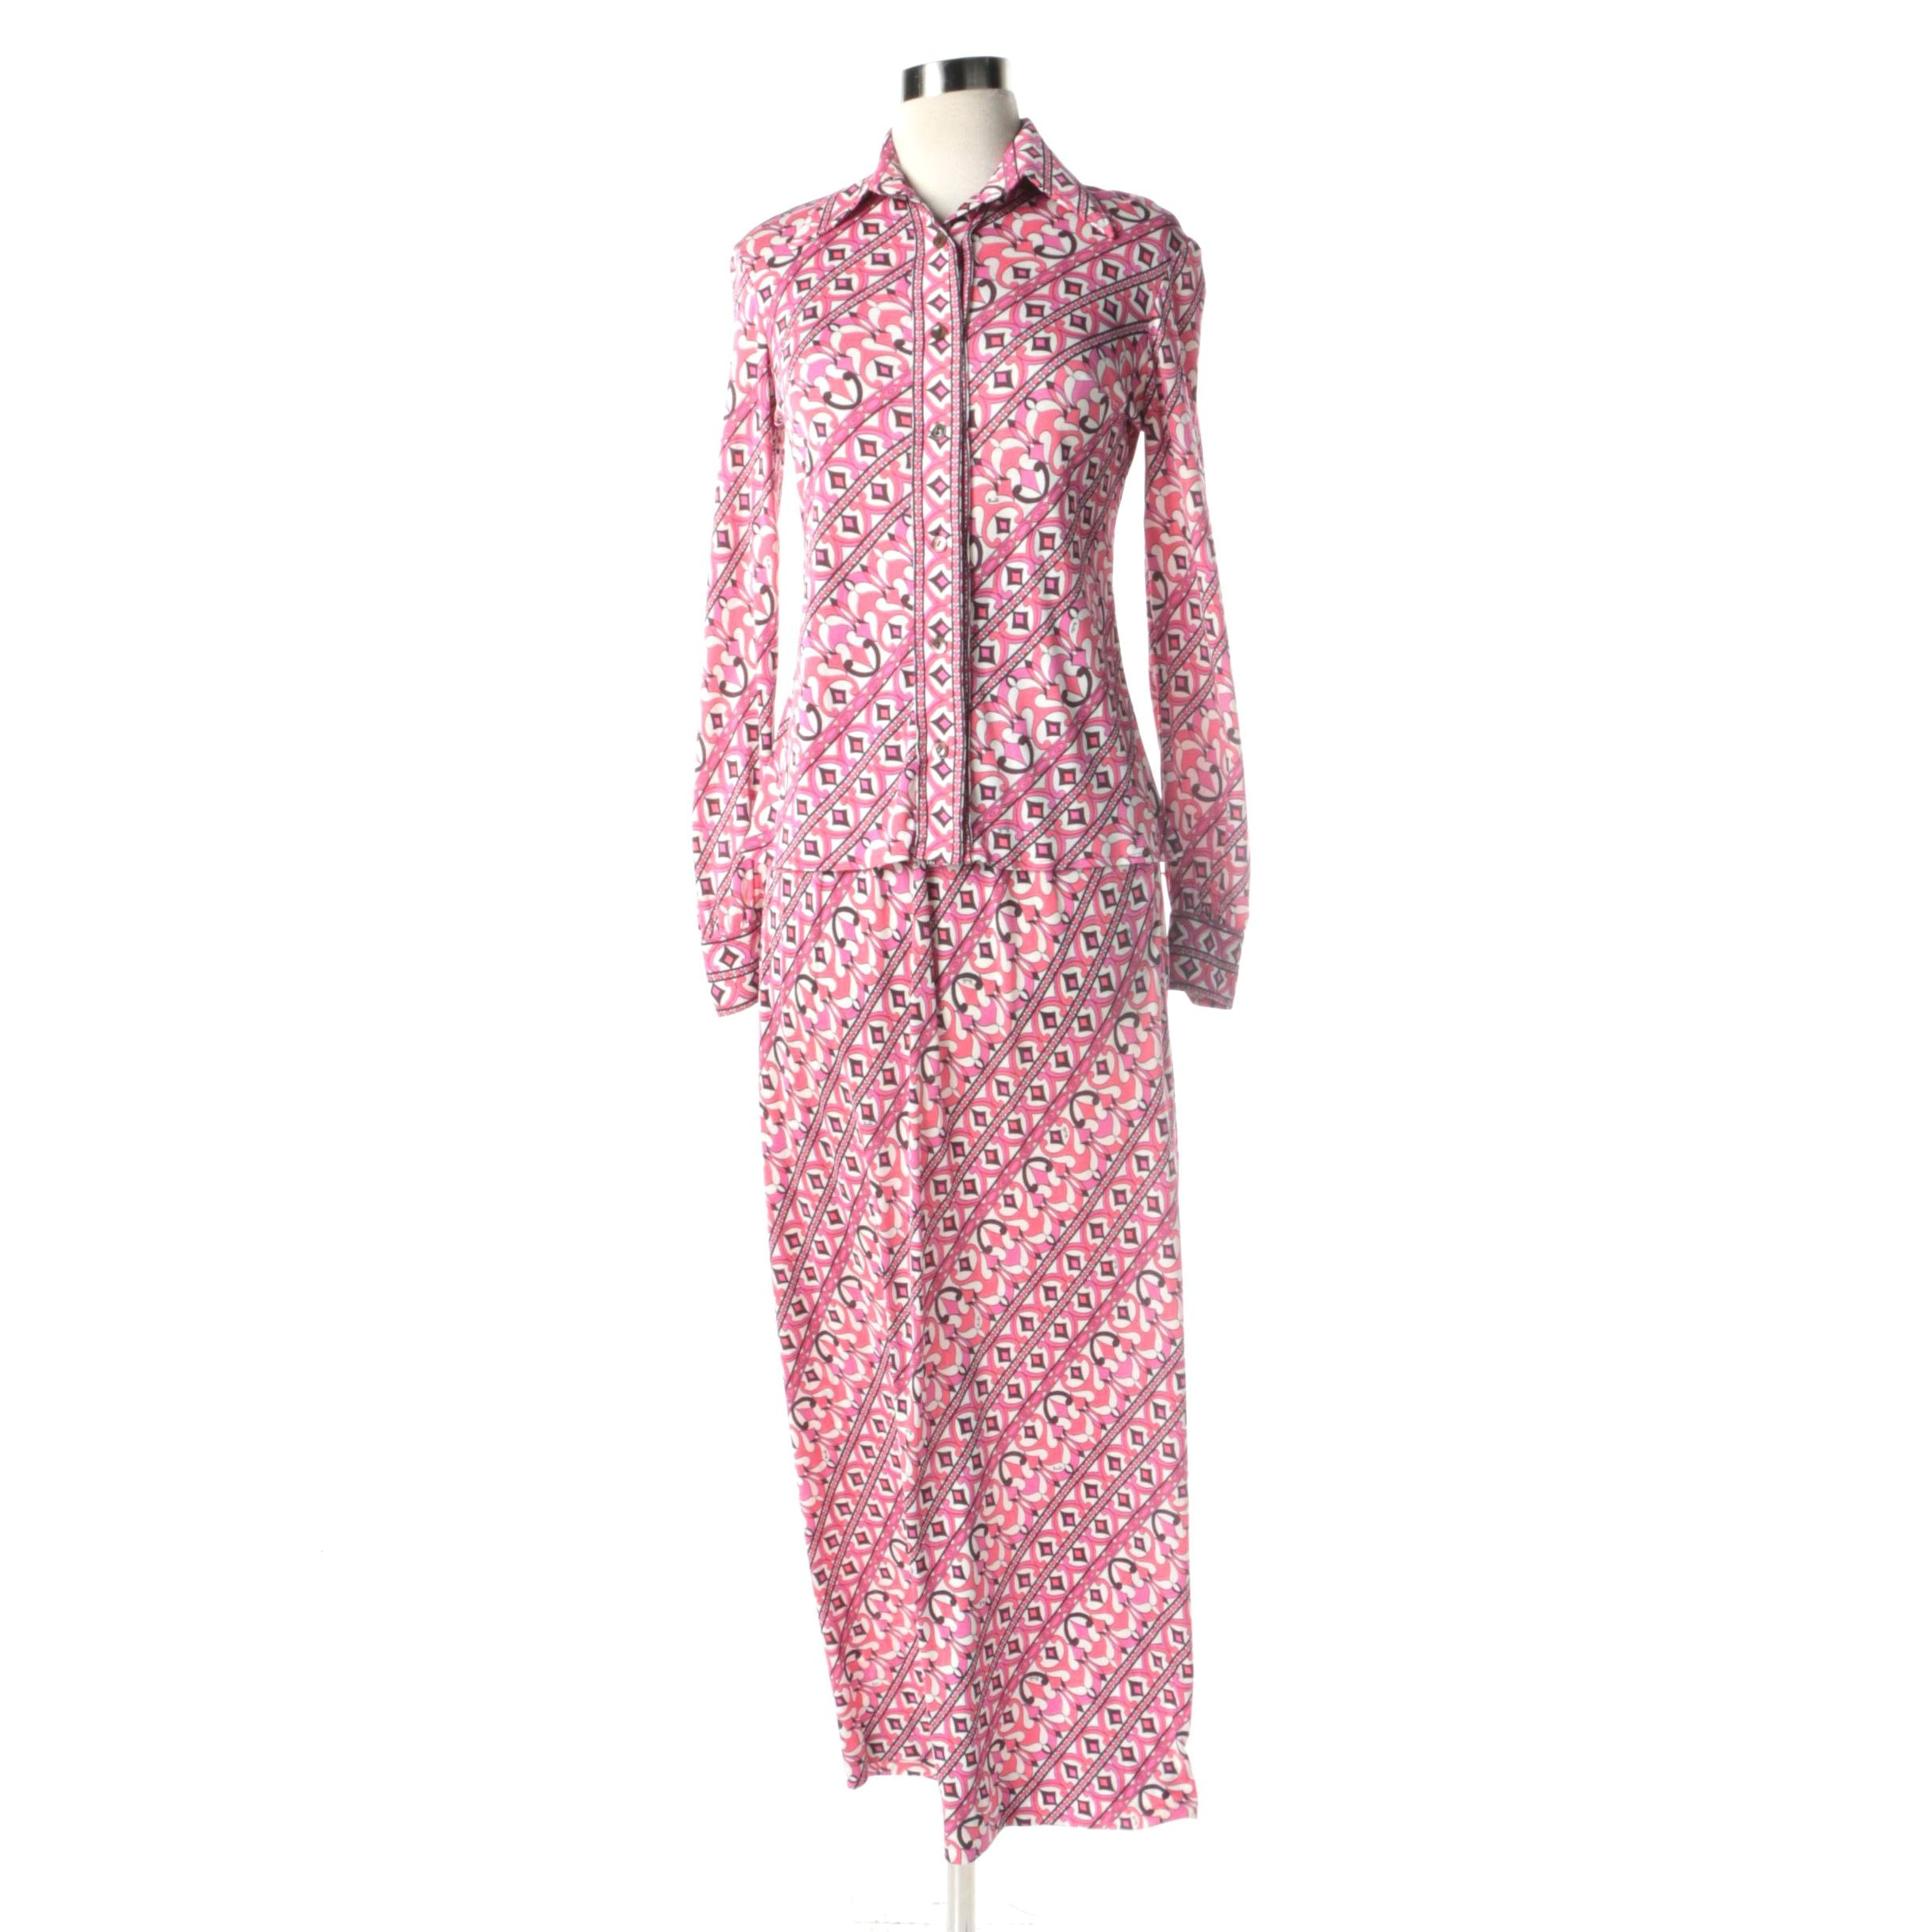 1960s Vintage Emilio Pucci Silk Jersey Blend Blouse and Skirt Set